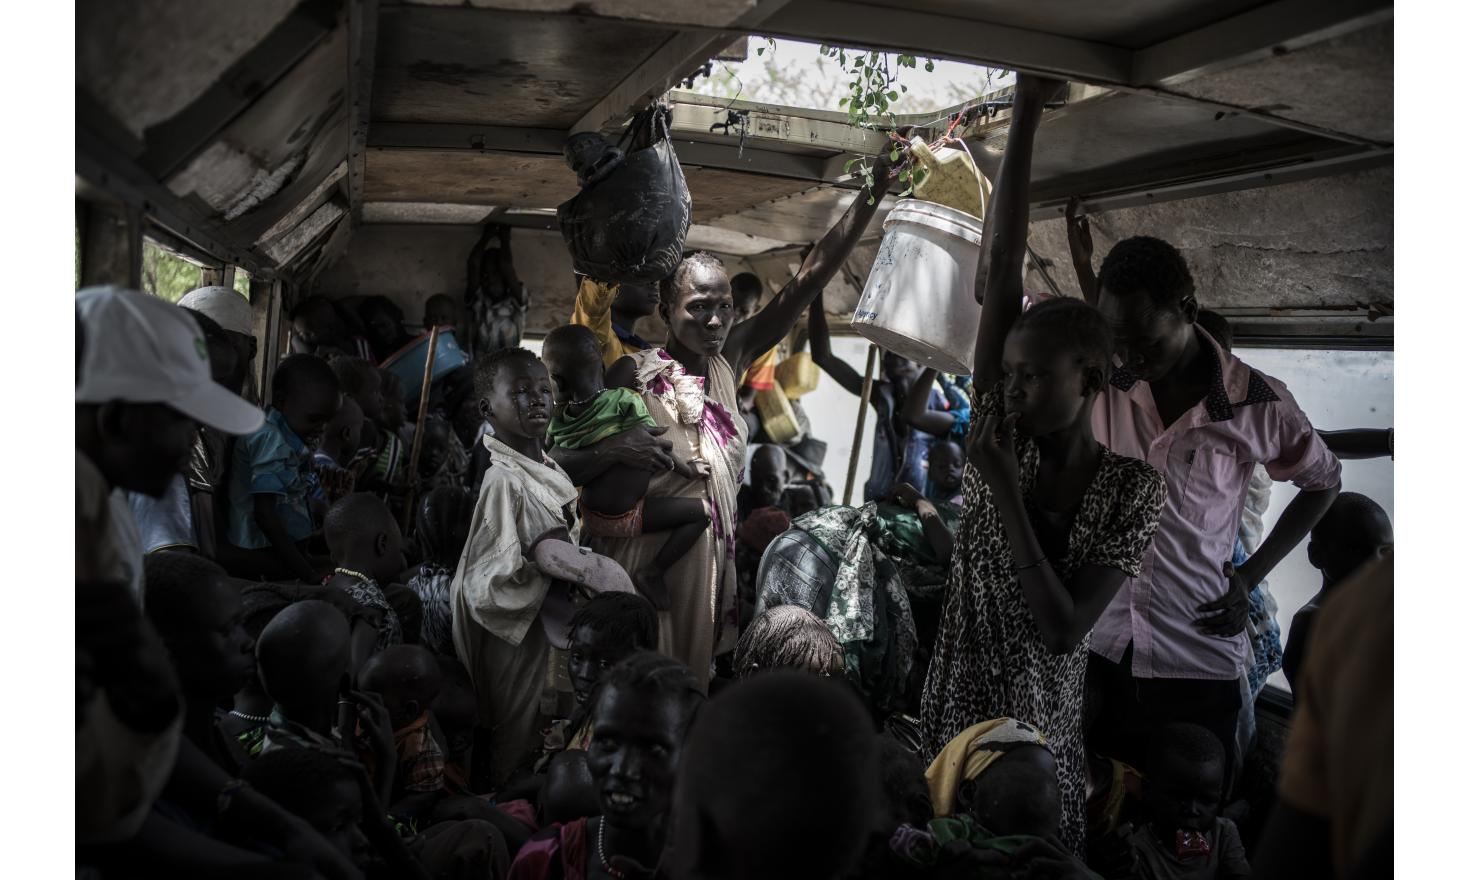 Departure time for displaced people, in the truck which drives them from front villages to Akobo, the city at the Ethiopian border. Yidit, South Sudan, May 4th 2017.